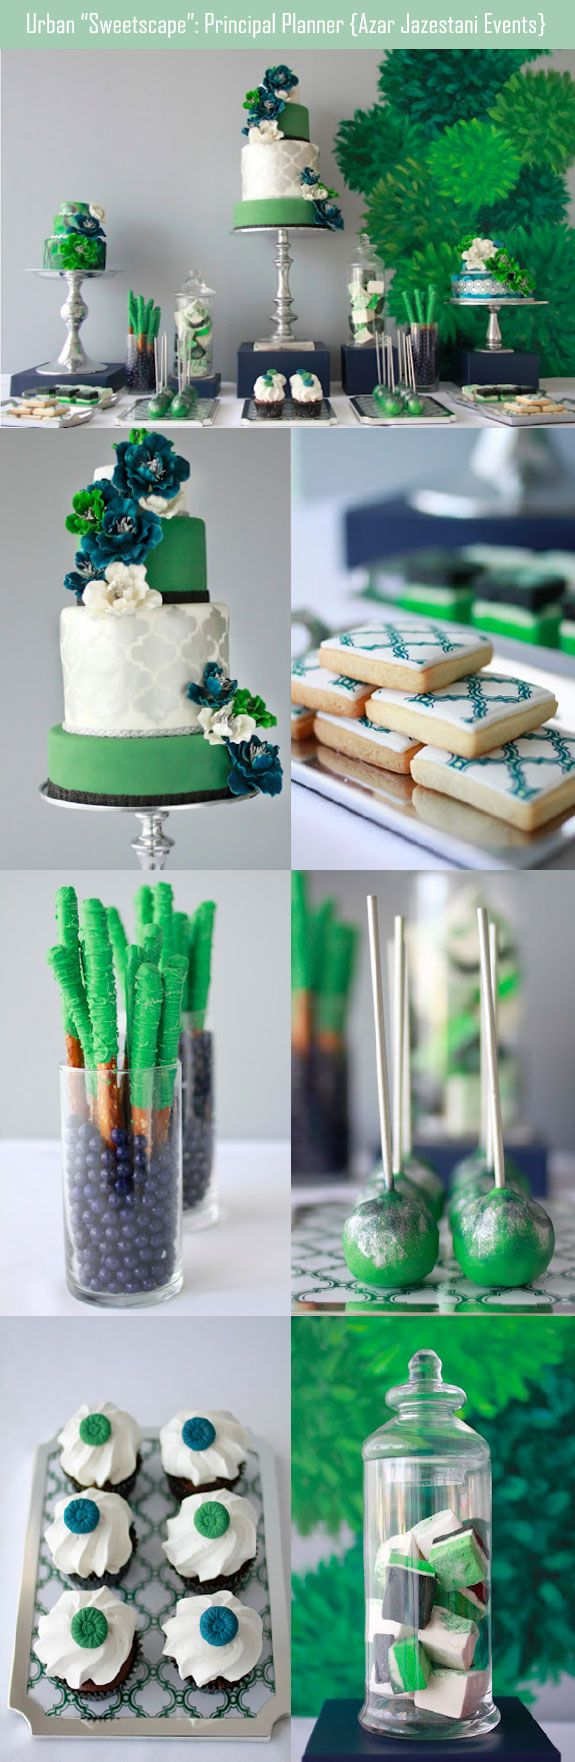 Green sweetscape for a St. Patrick's day wedding includes an awesome wedding cake. #stpatricksdaywedding